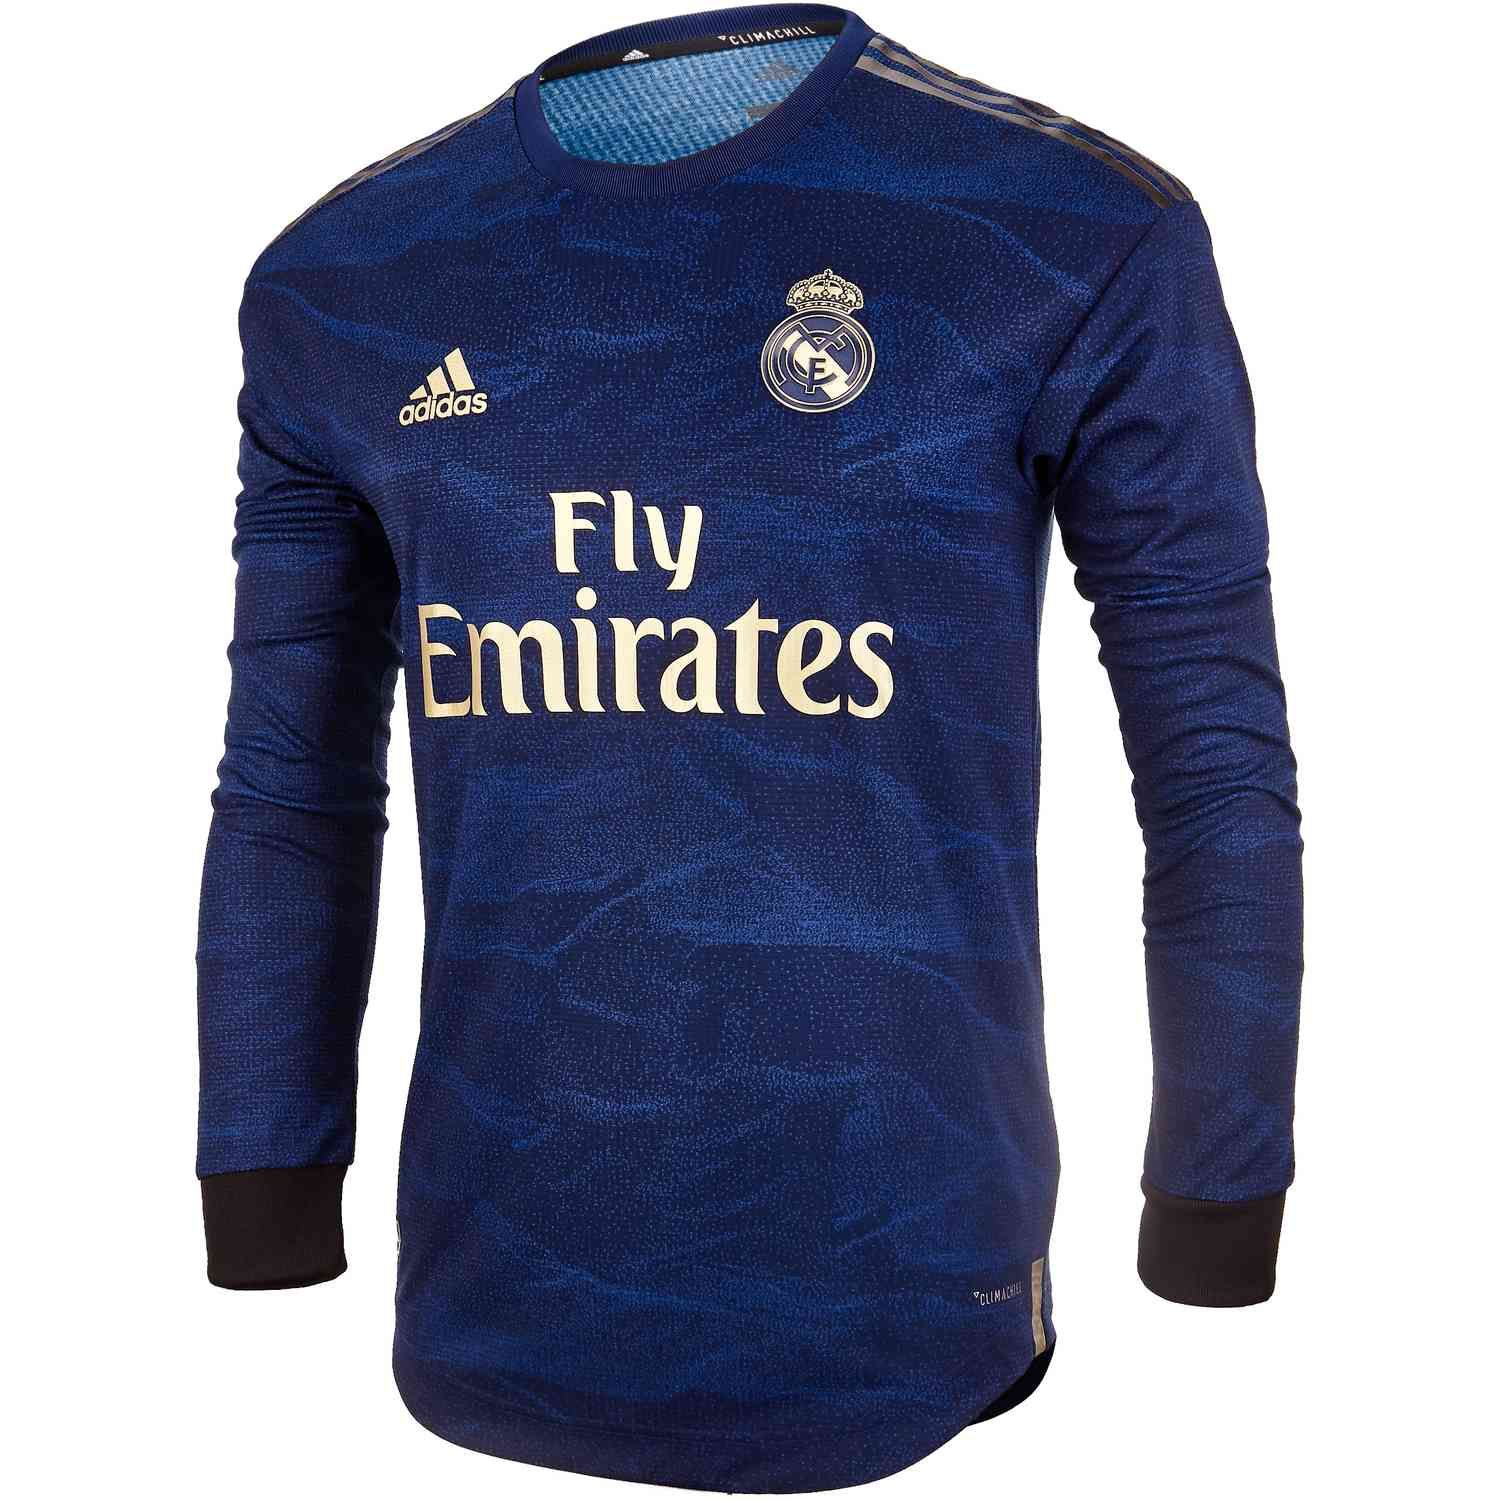 2019 20 Adidas Real Madrid L S Authentic Away Jersey Camisas De Futbol Camisetas De Futbol Real Madrid Futbol